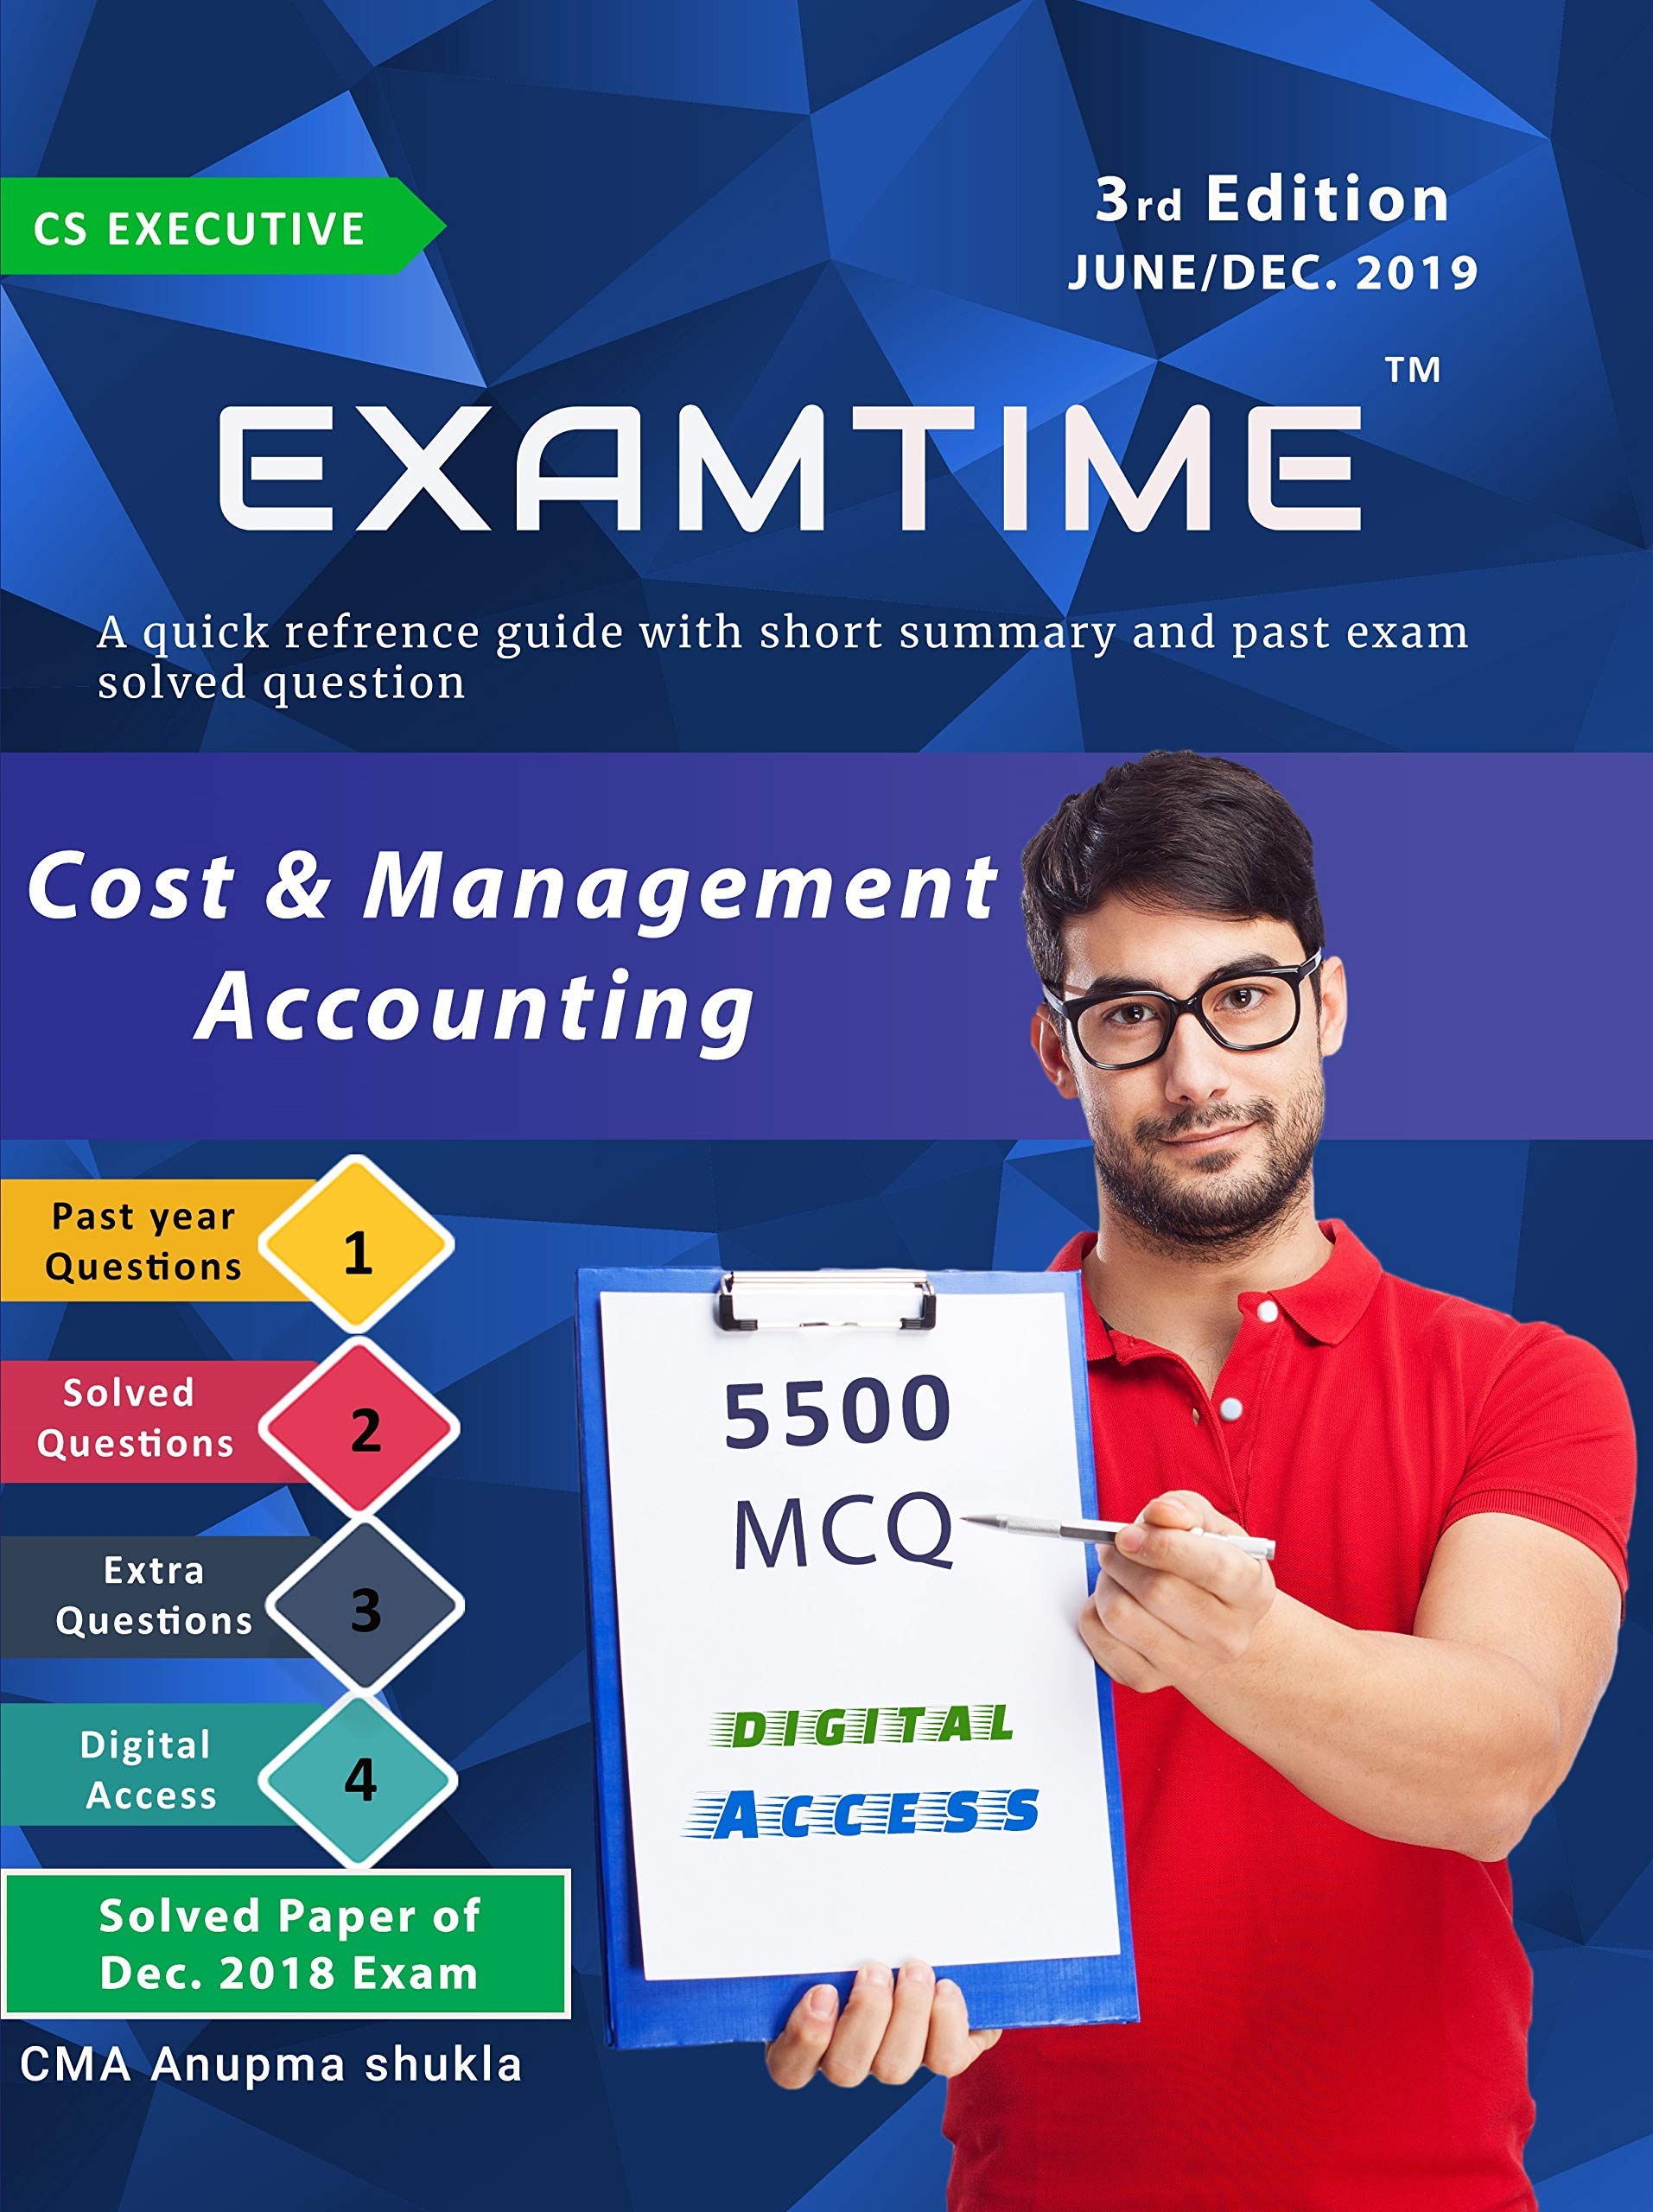 EXAMTIME Cost and Management Accounting MCQ By Cma Anupama shukla